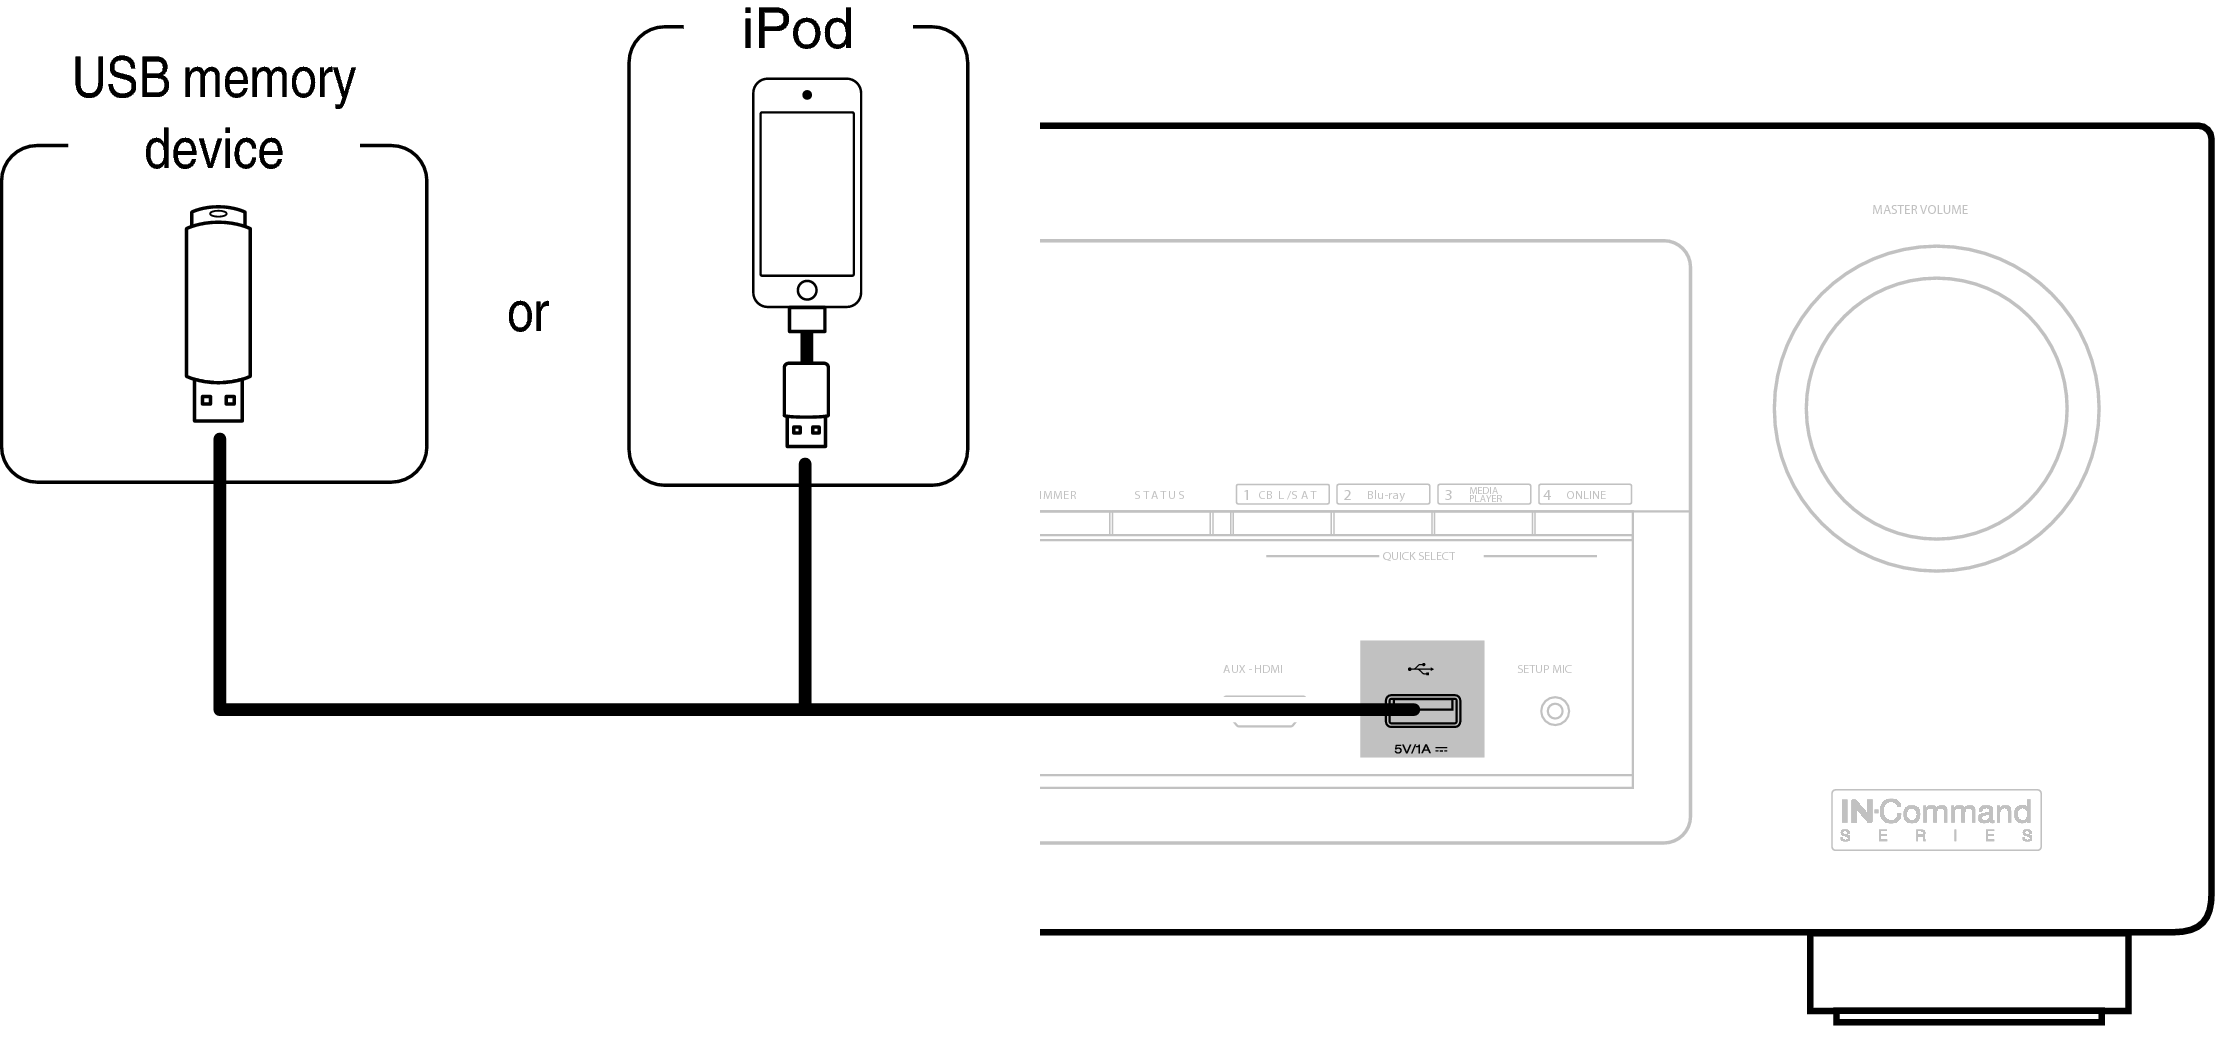 Connecting An Ipod Or Usb Memory Device To The Port Avr X2100w Wiring Diagram For Shuffle Conne Front Avrx2100w